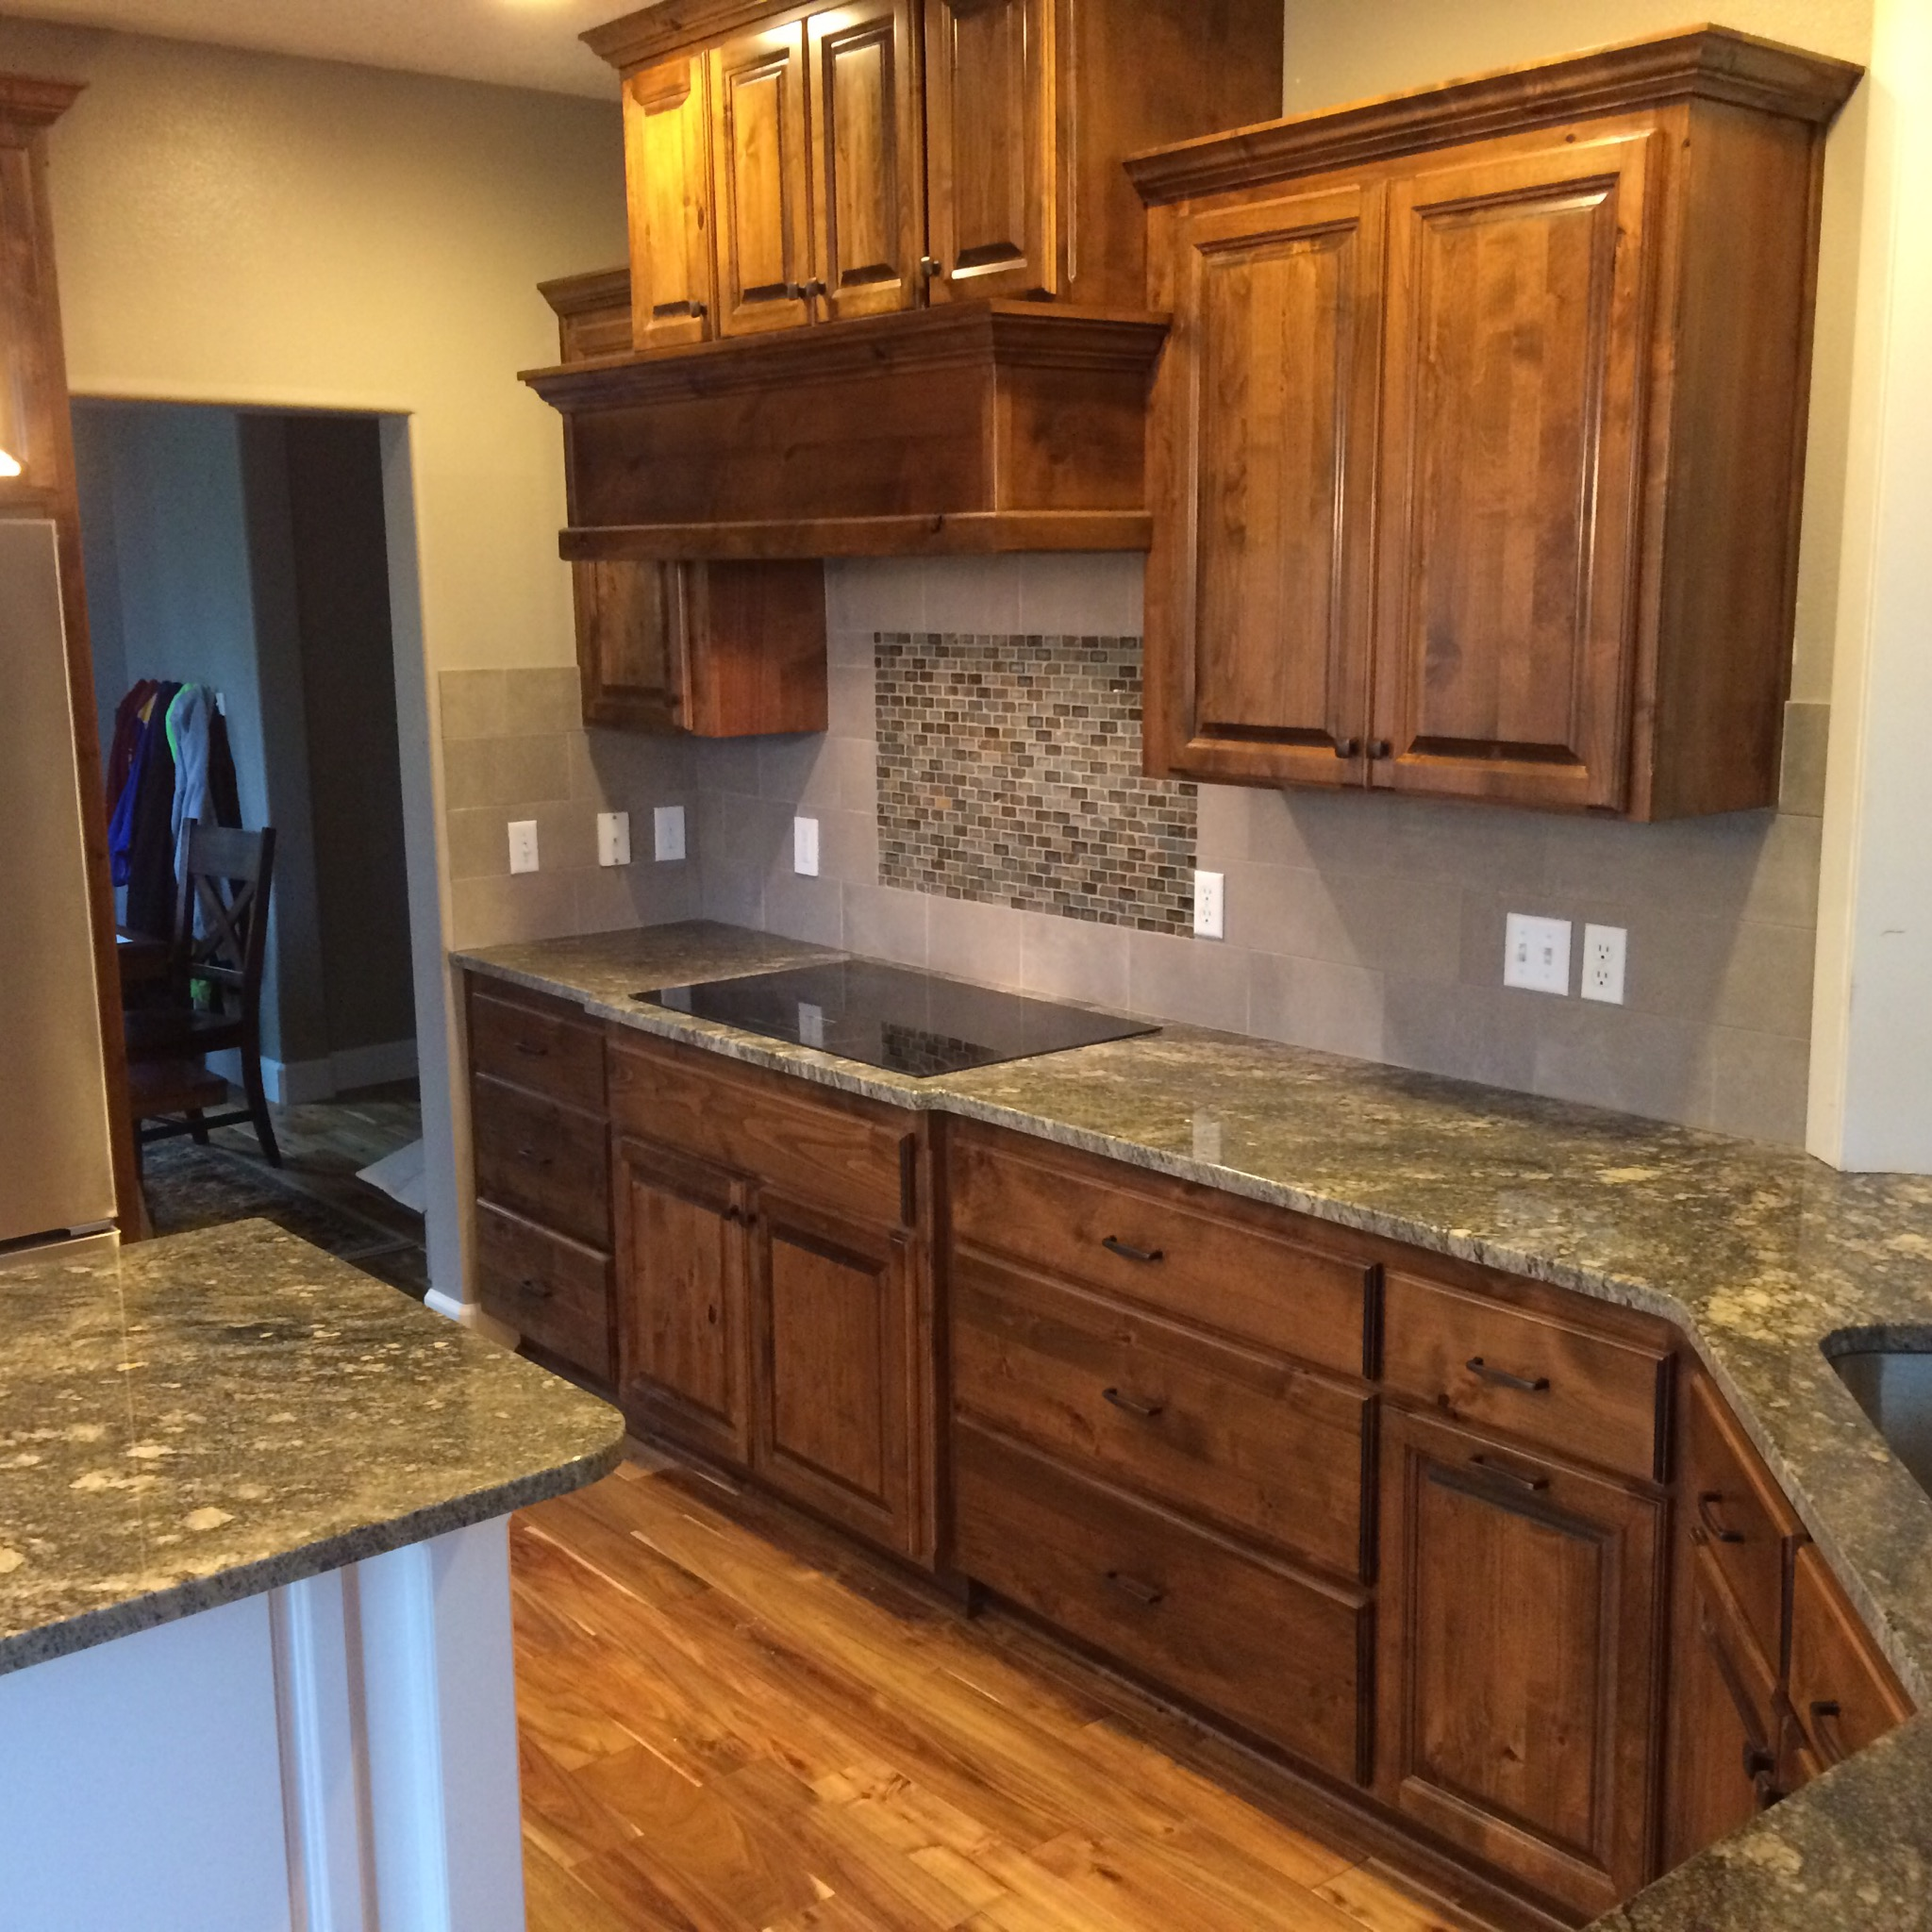 Livingston mt kitchen remodel indy construction llc for Acacia wood kitchen cabinets